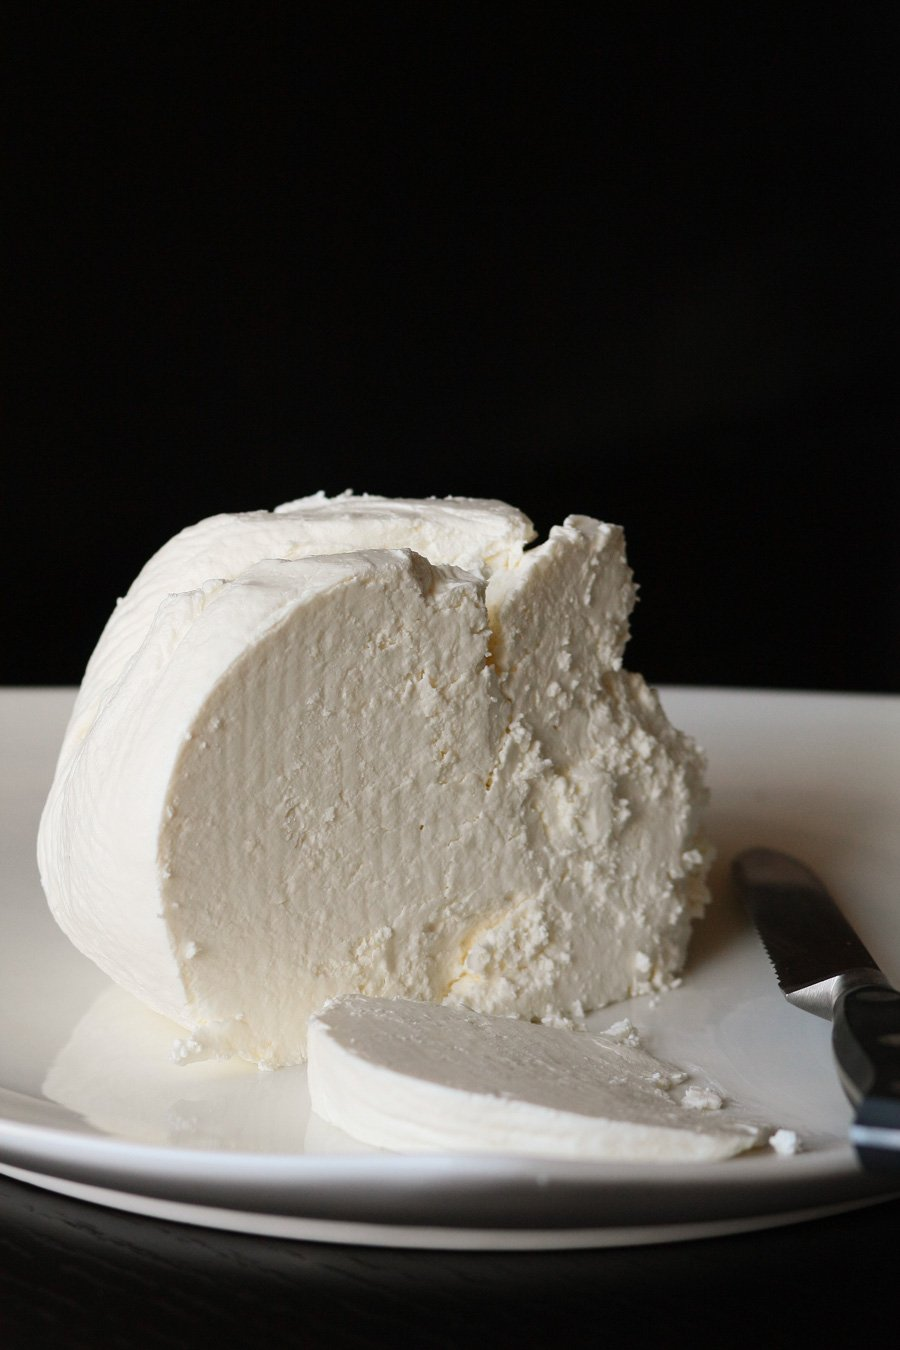 Homemade Farmer's cheese recipe on a plate with a butter knife.